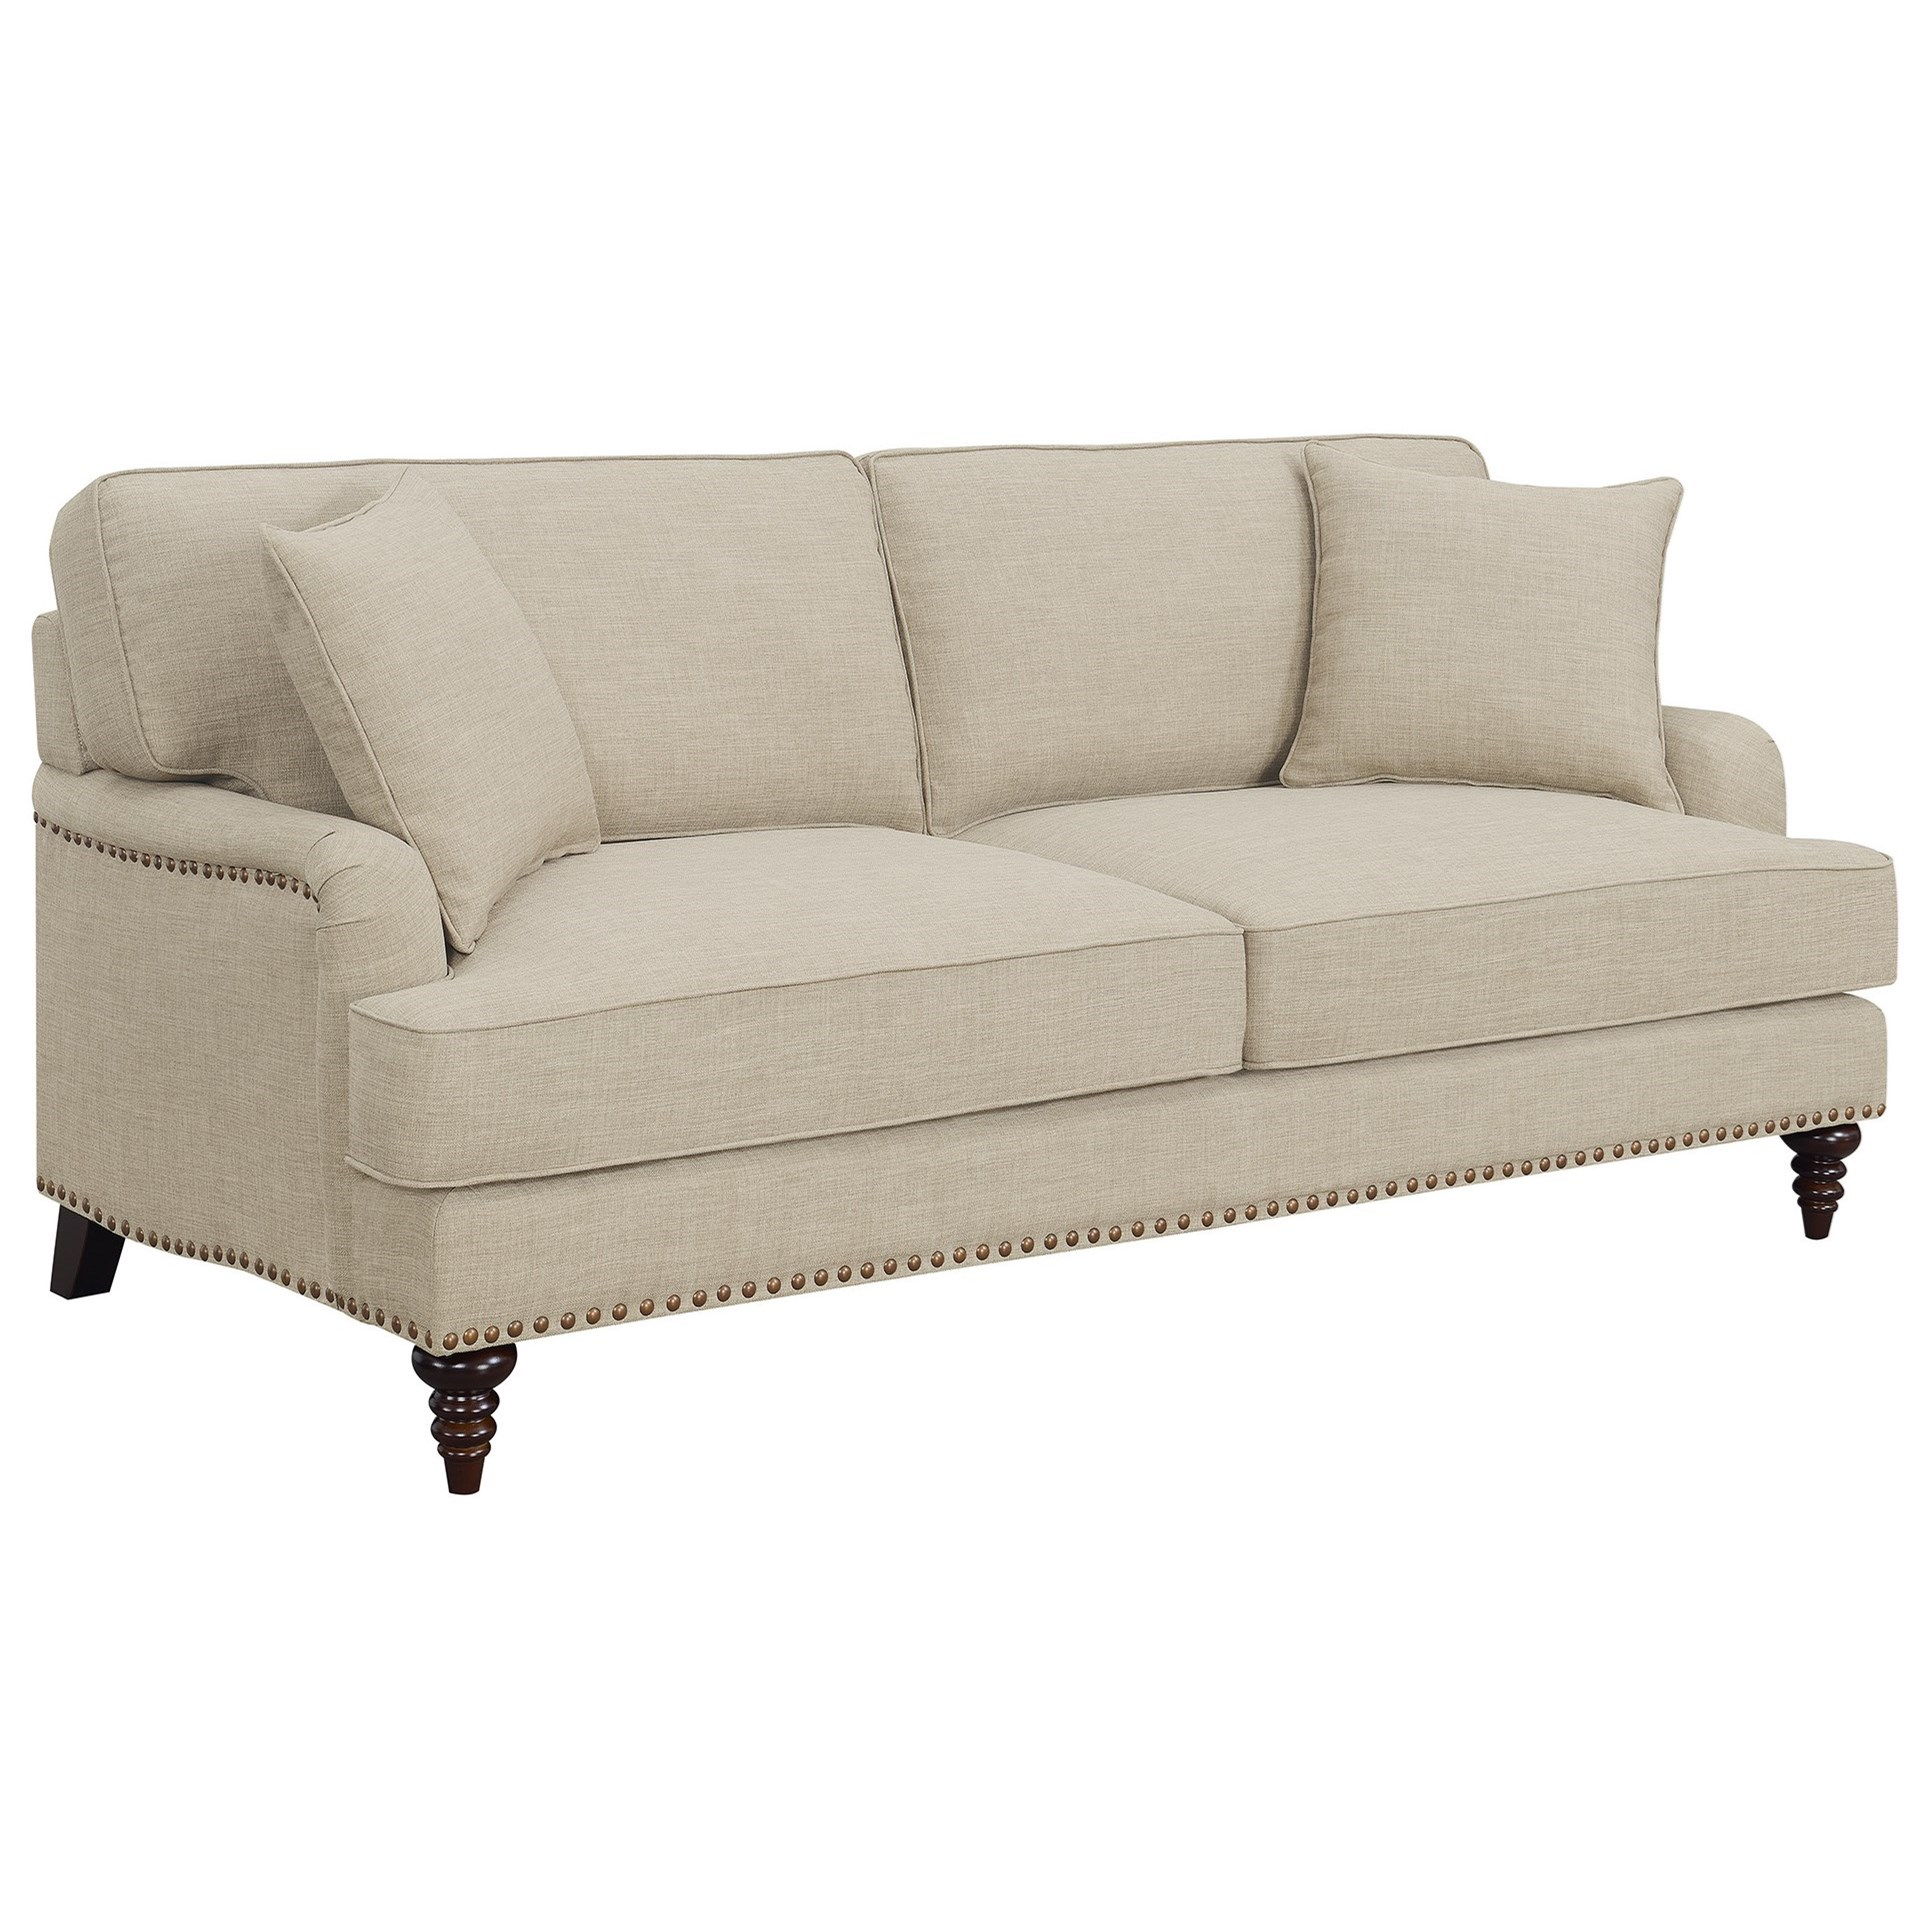 Abby Sofa w/ Pillows by Elements International at Wilcox Furniture